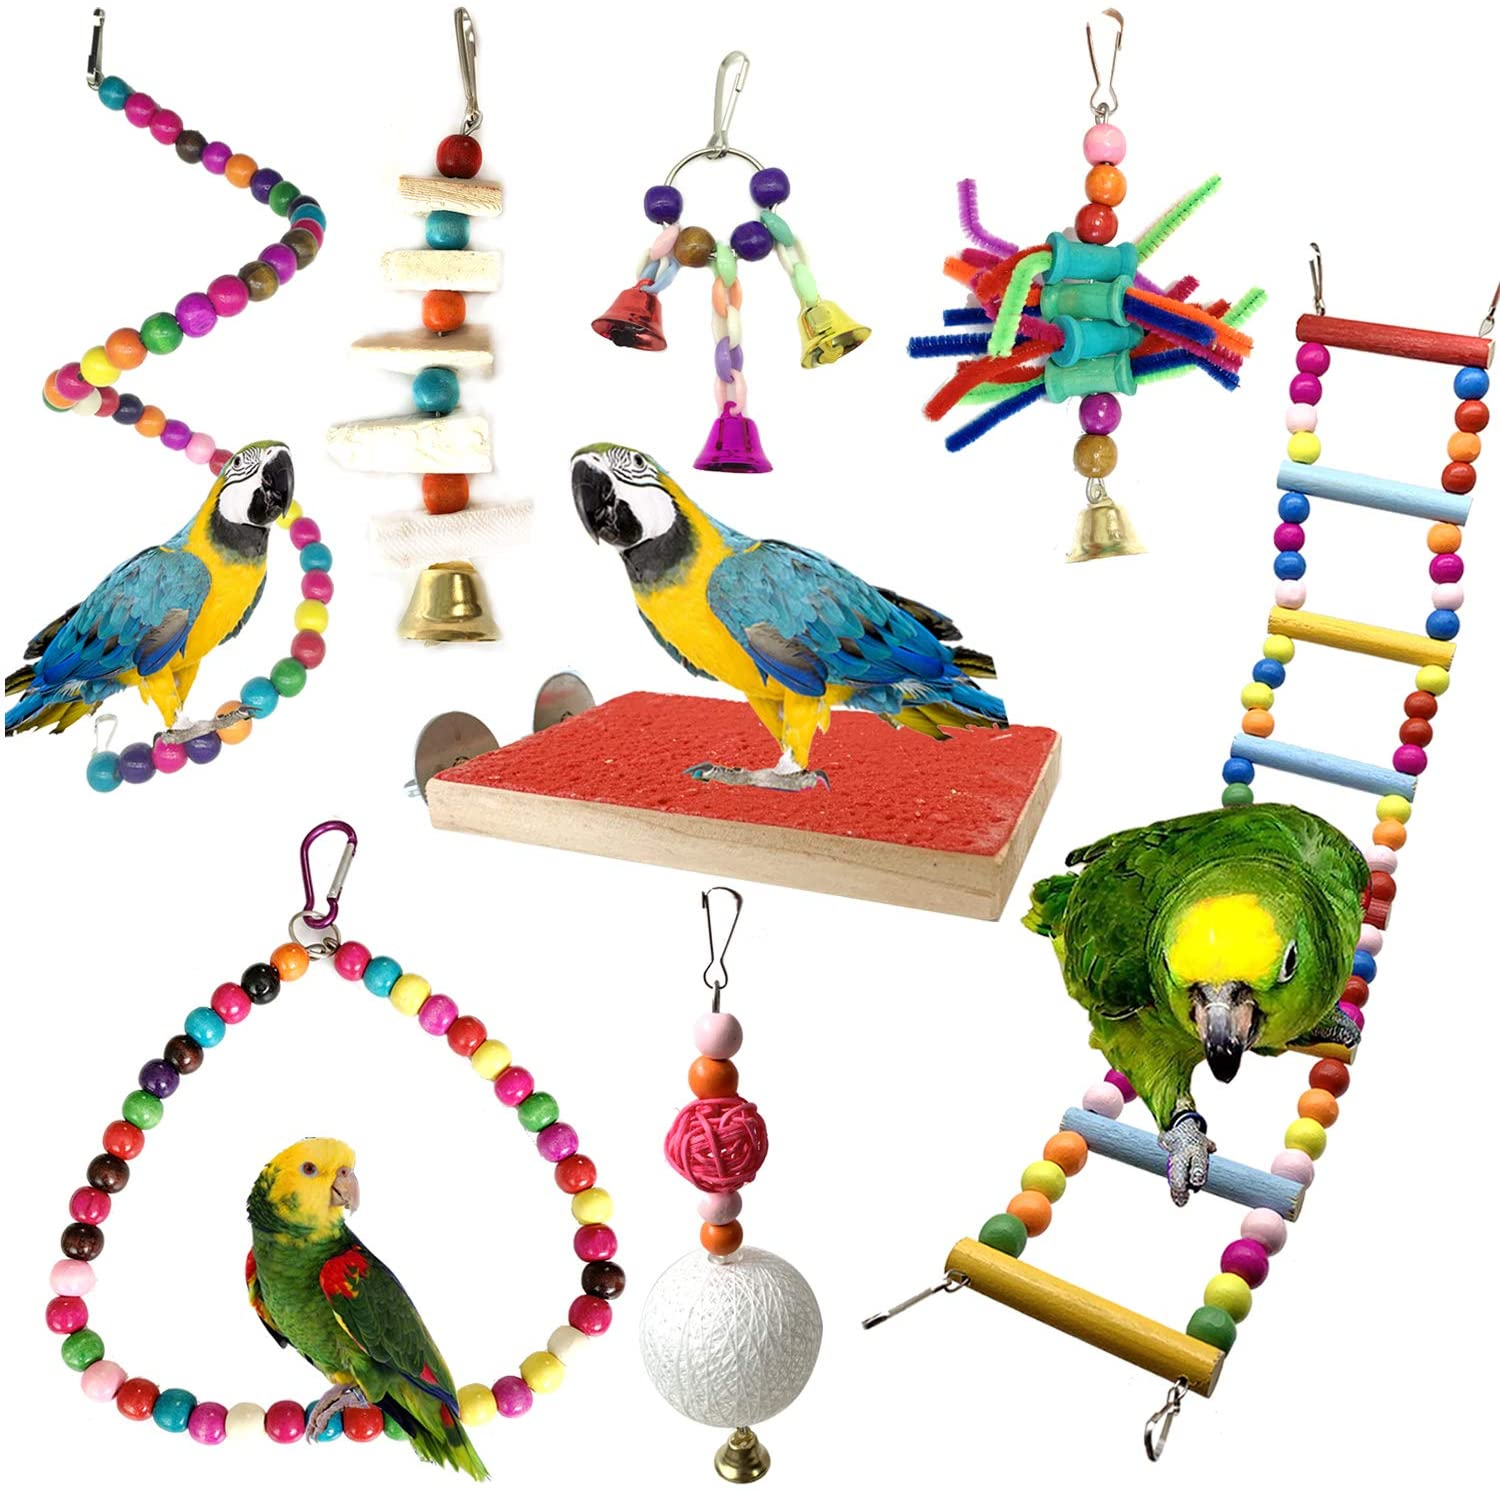 PietyPet Bird Cages Accessories Sales Perch 8pcs favorite Stand Colorful